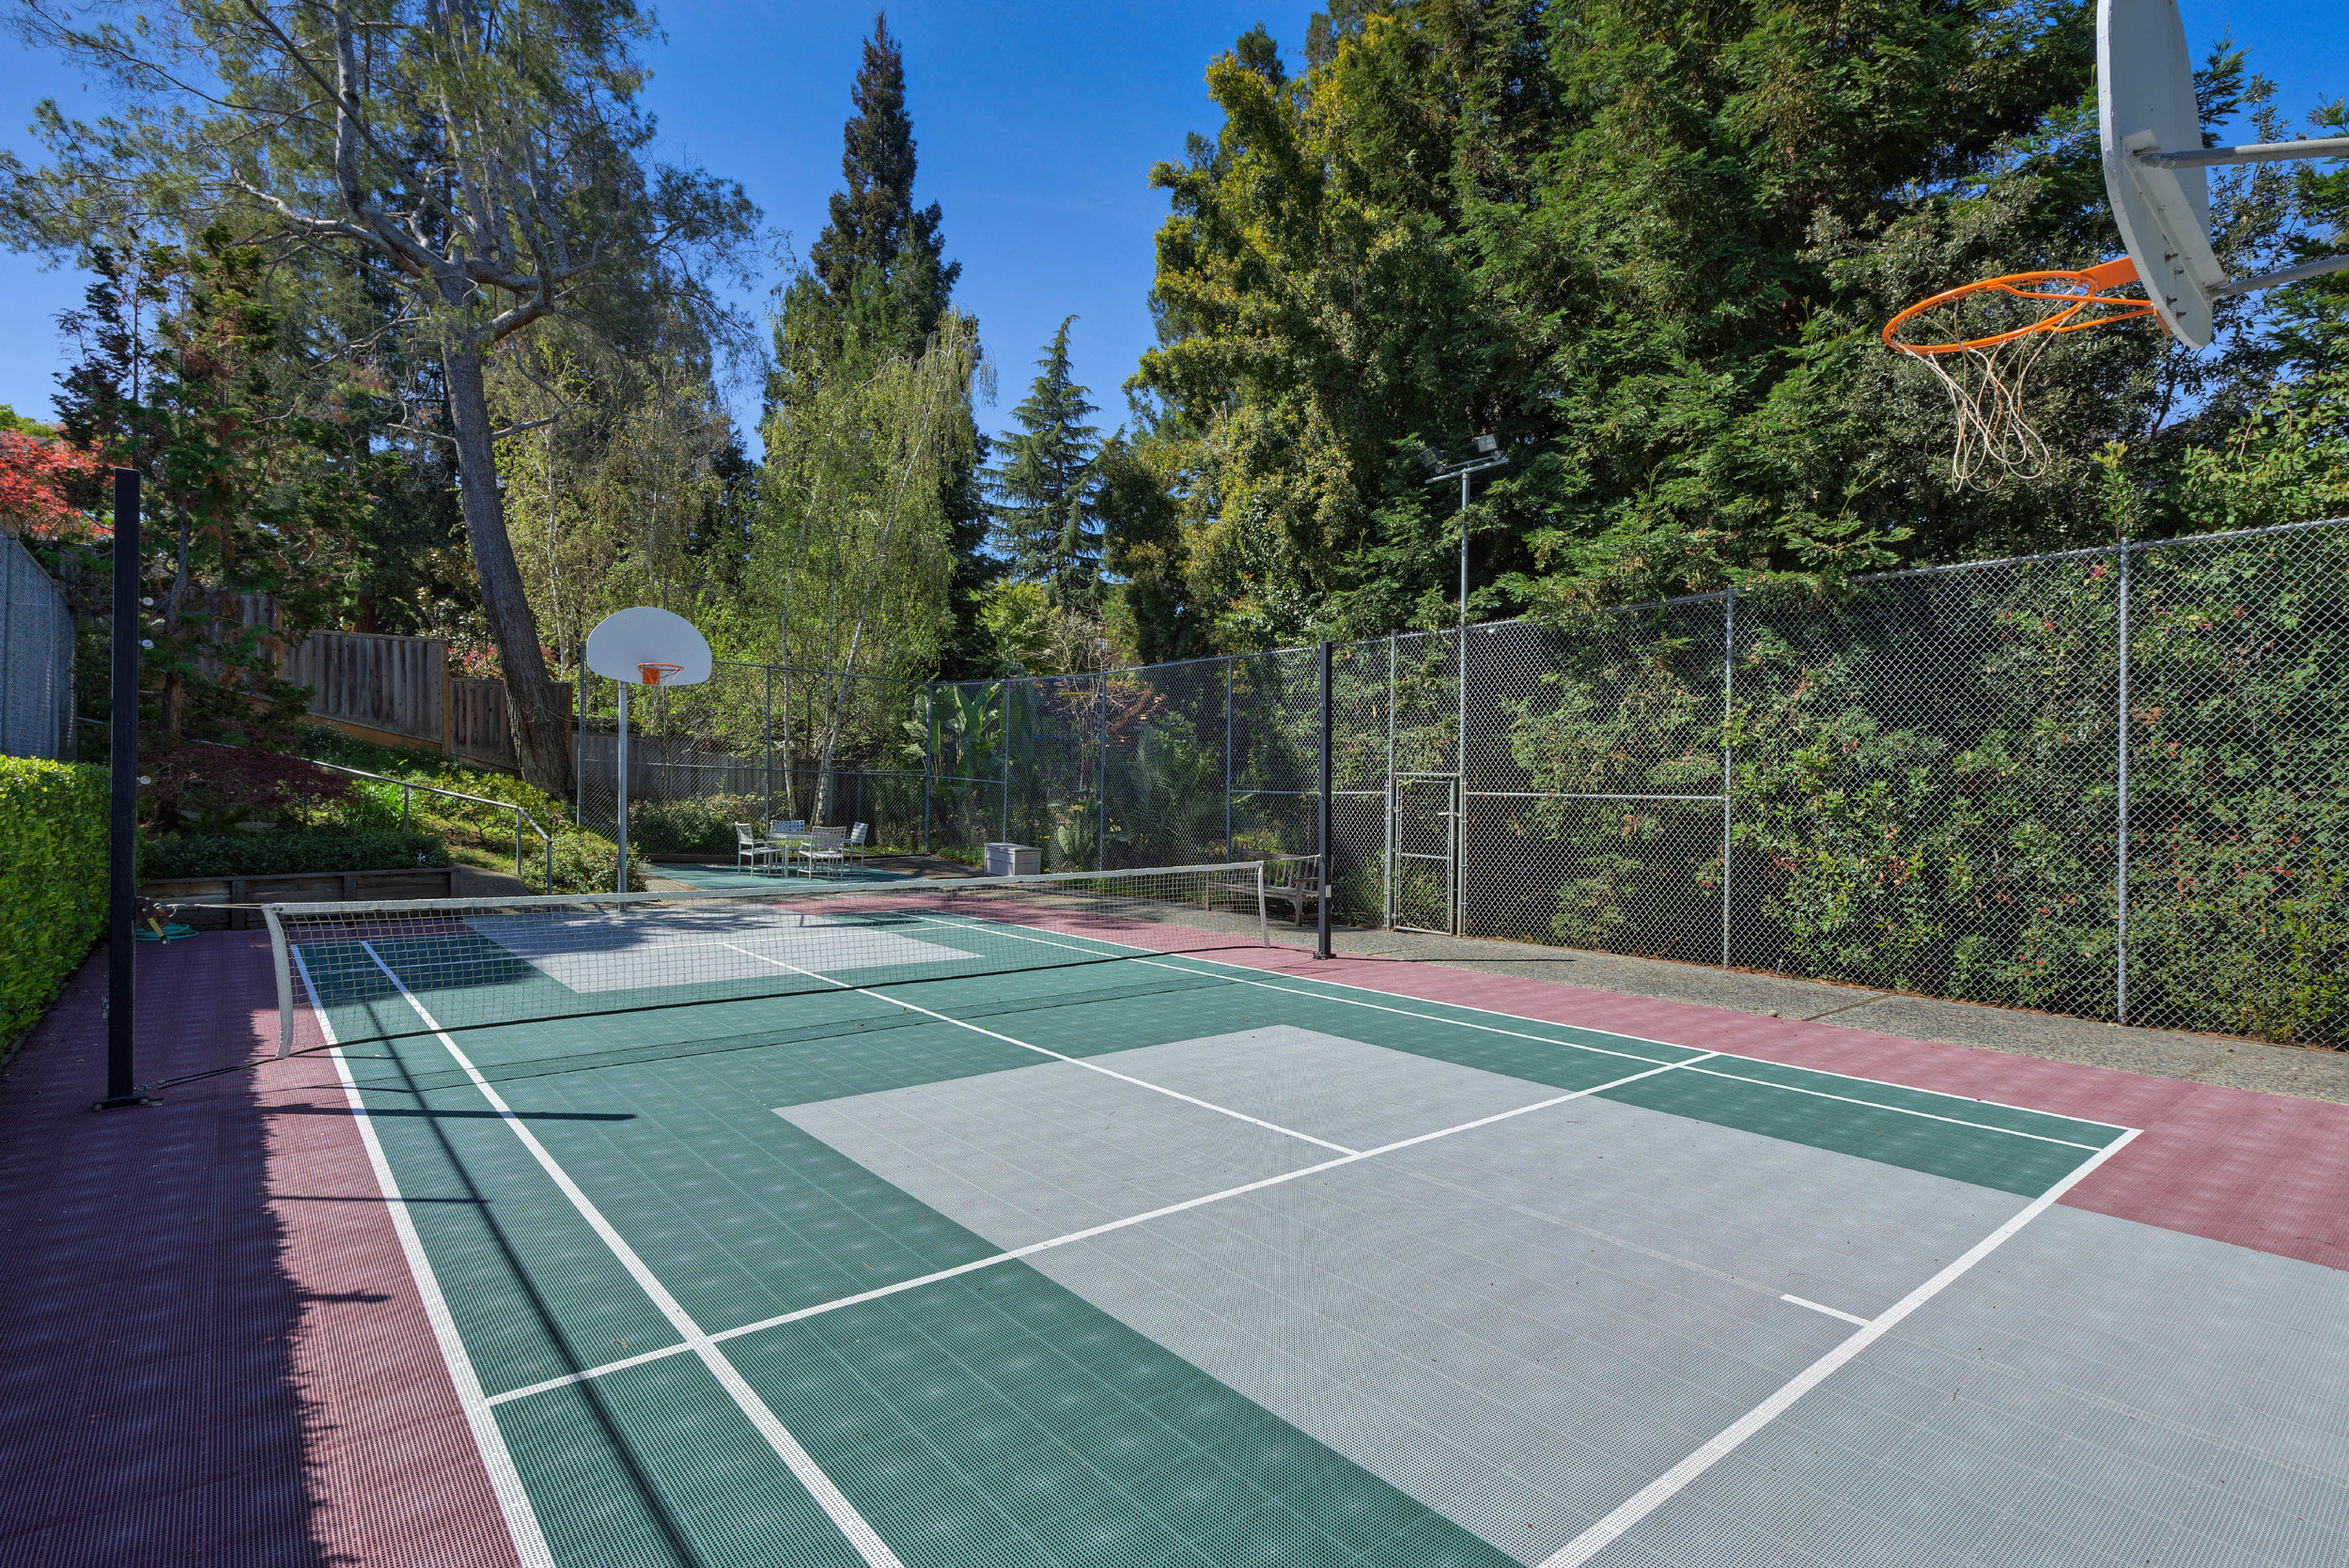 34_Back_Tennis Court.jpg